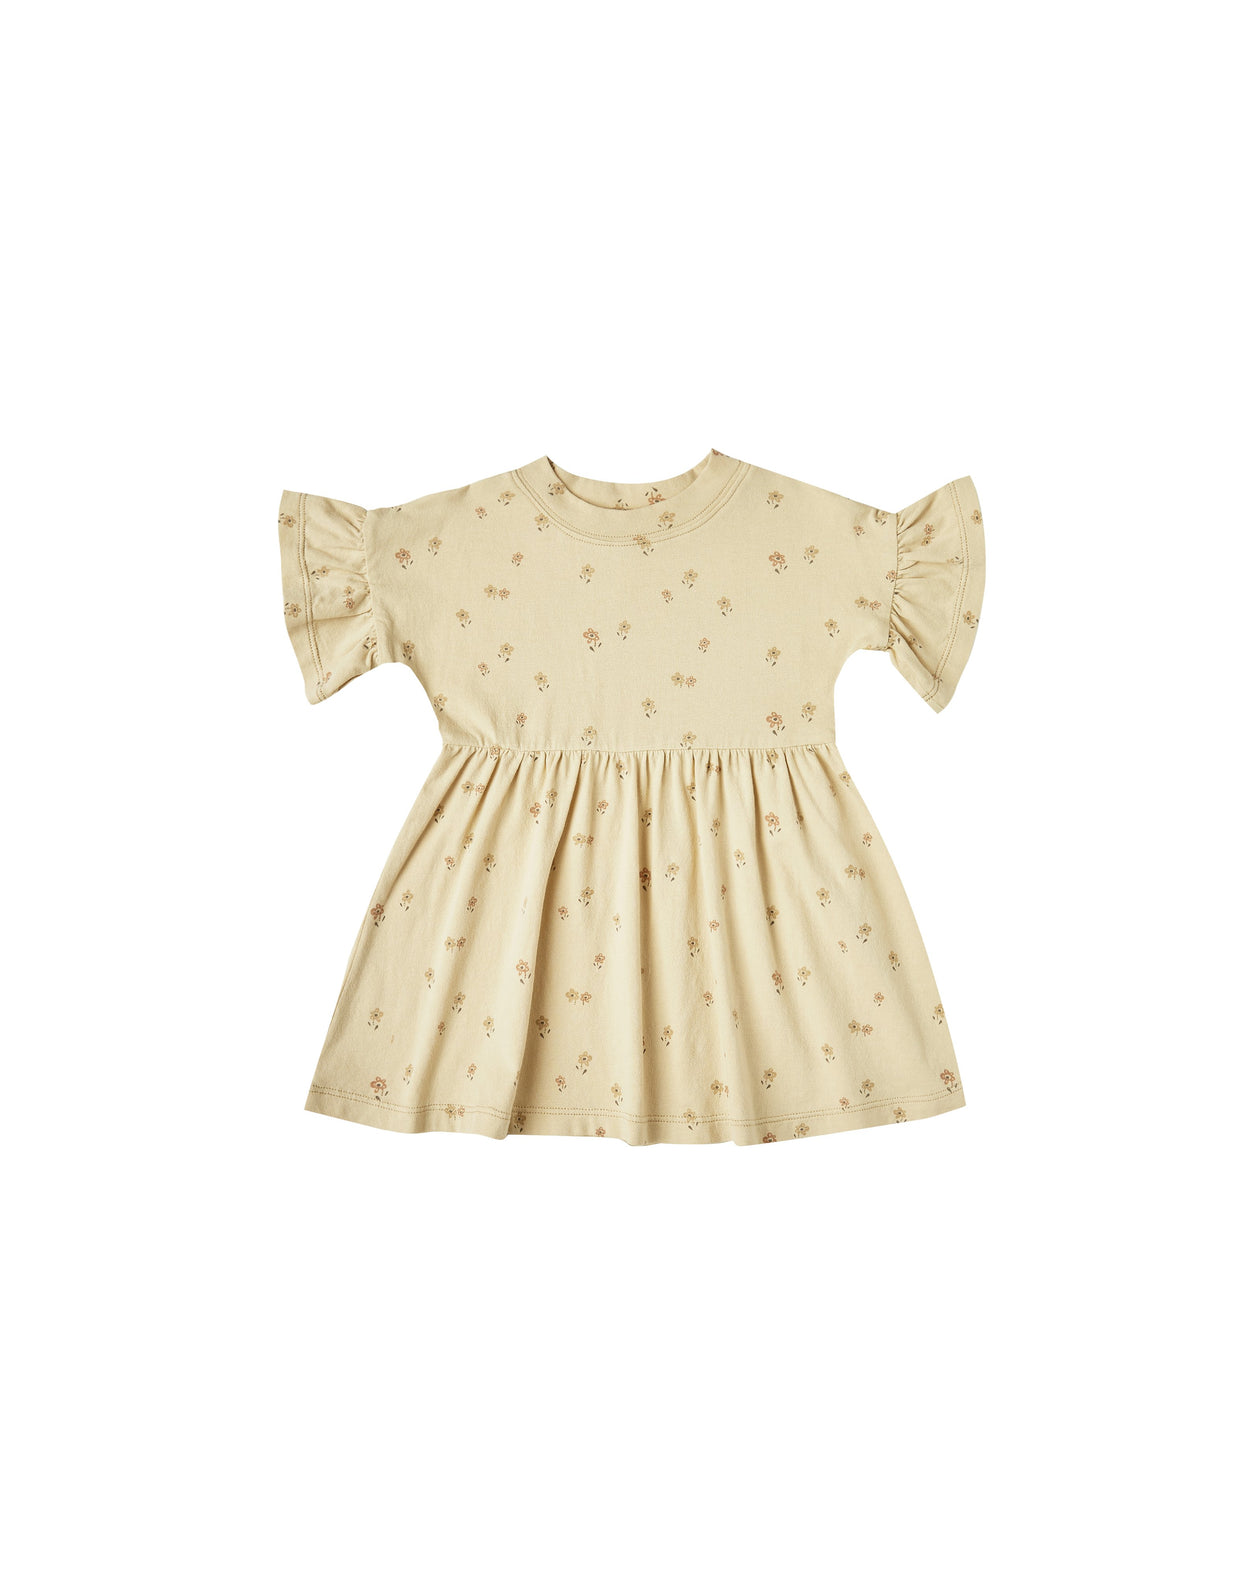 The Rylee & Cru Little Flower Babydoll Dress Butter